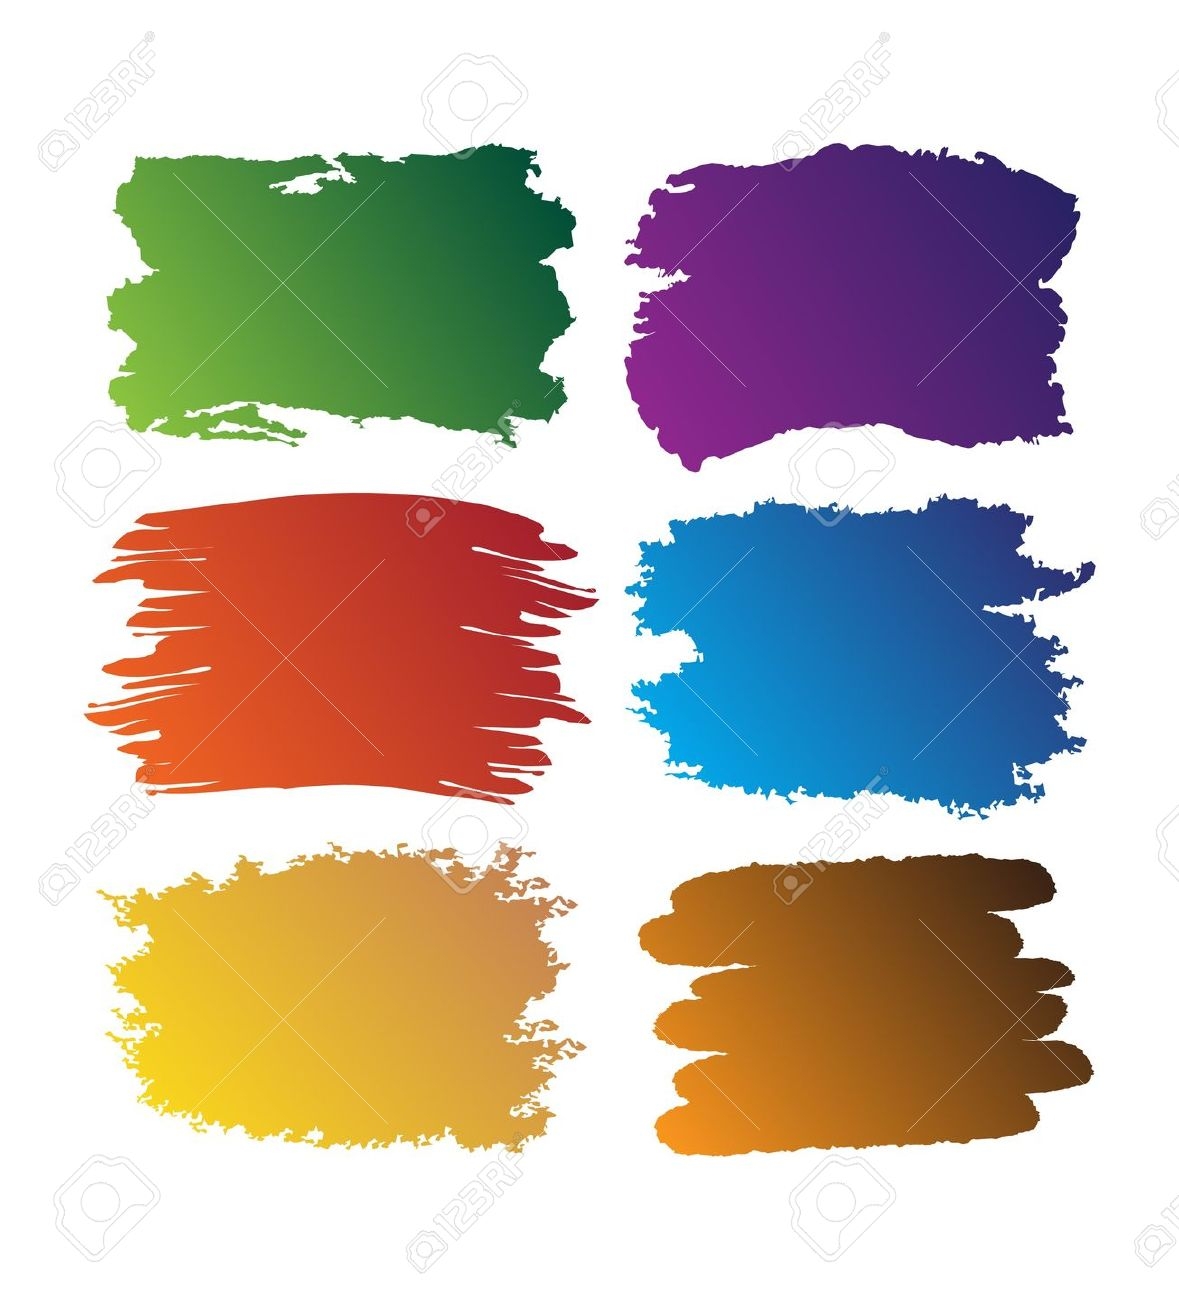 73,527 Paint Brush Stroke Stock Illustrations, Cliparts And.